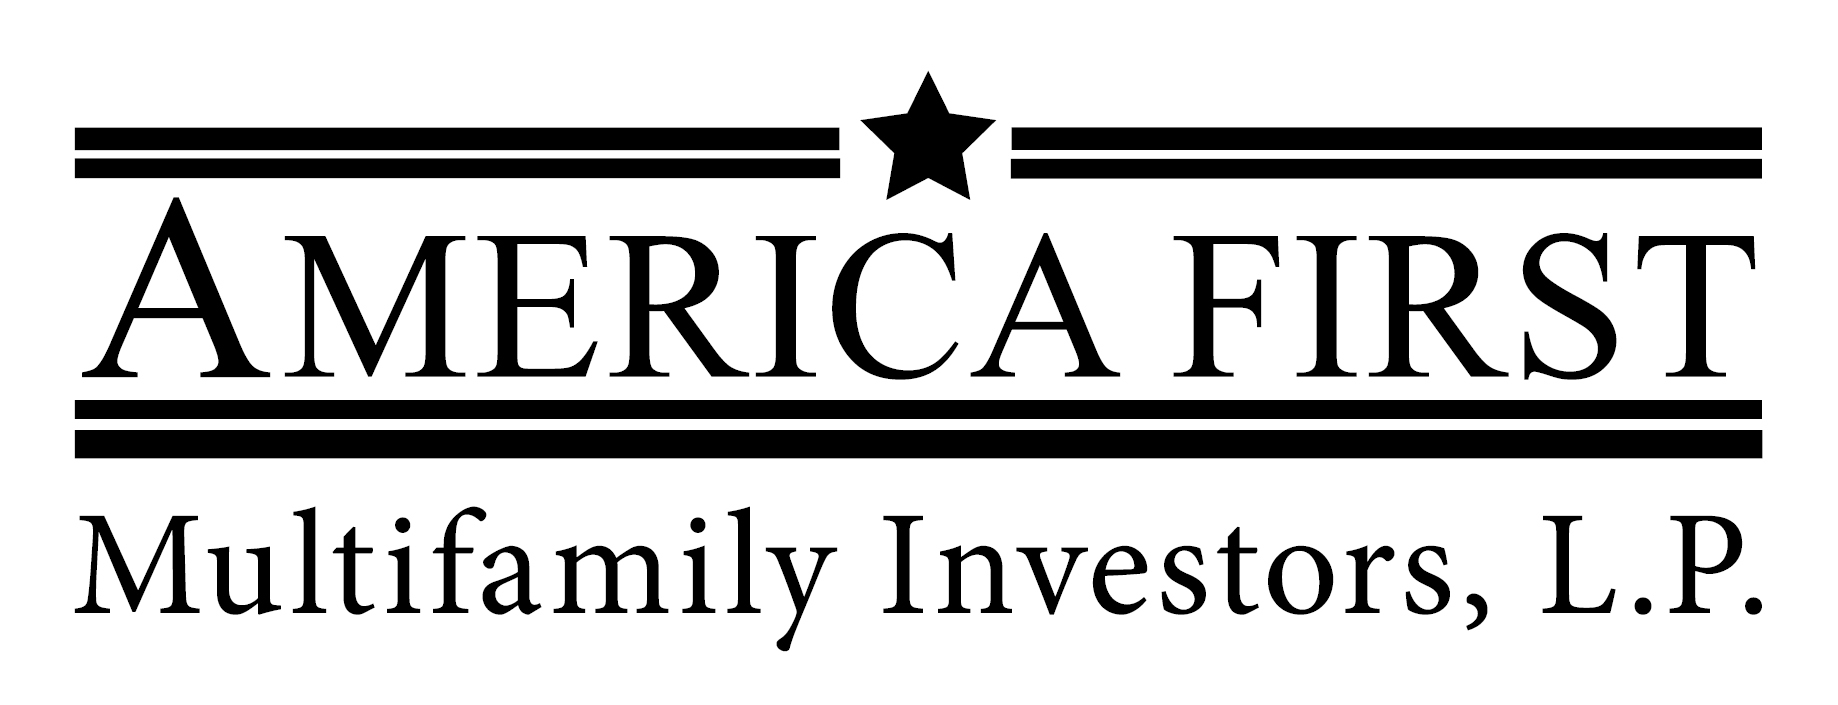 America First Multifamily Investors, L.P.